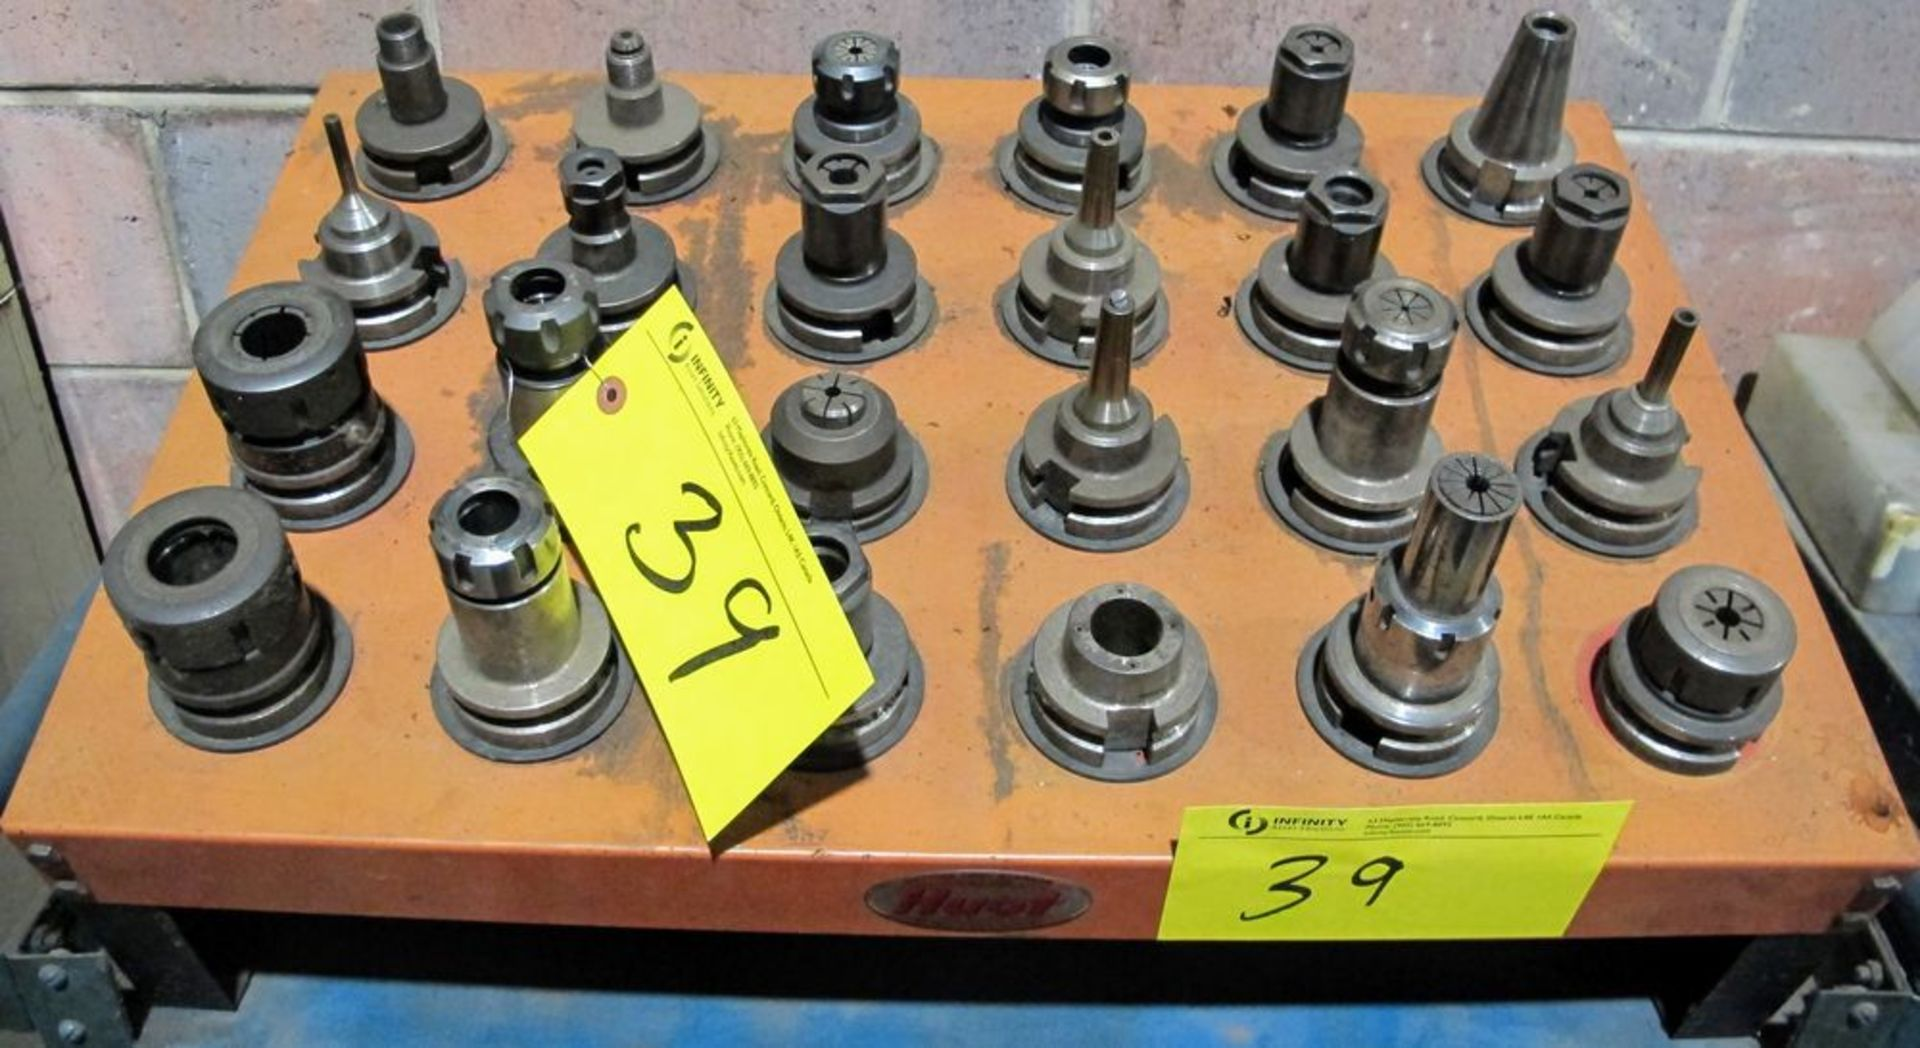 Lot 39 - LOT (24) ASST. BT40 TOOL HOLDERS W/ TOOLING AND HUOT TRAY